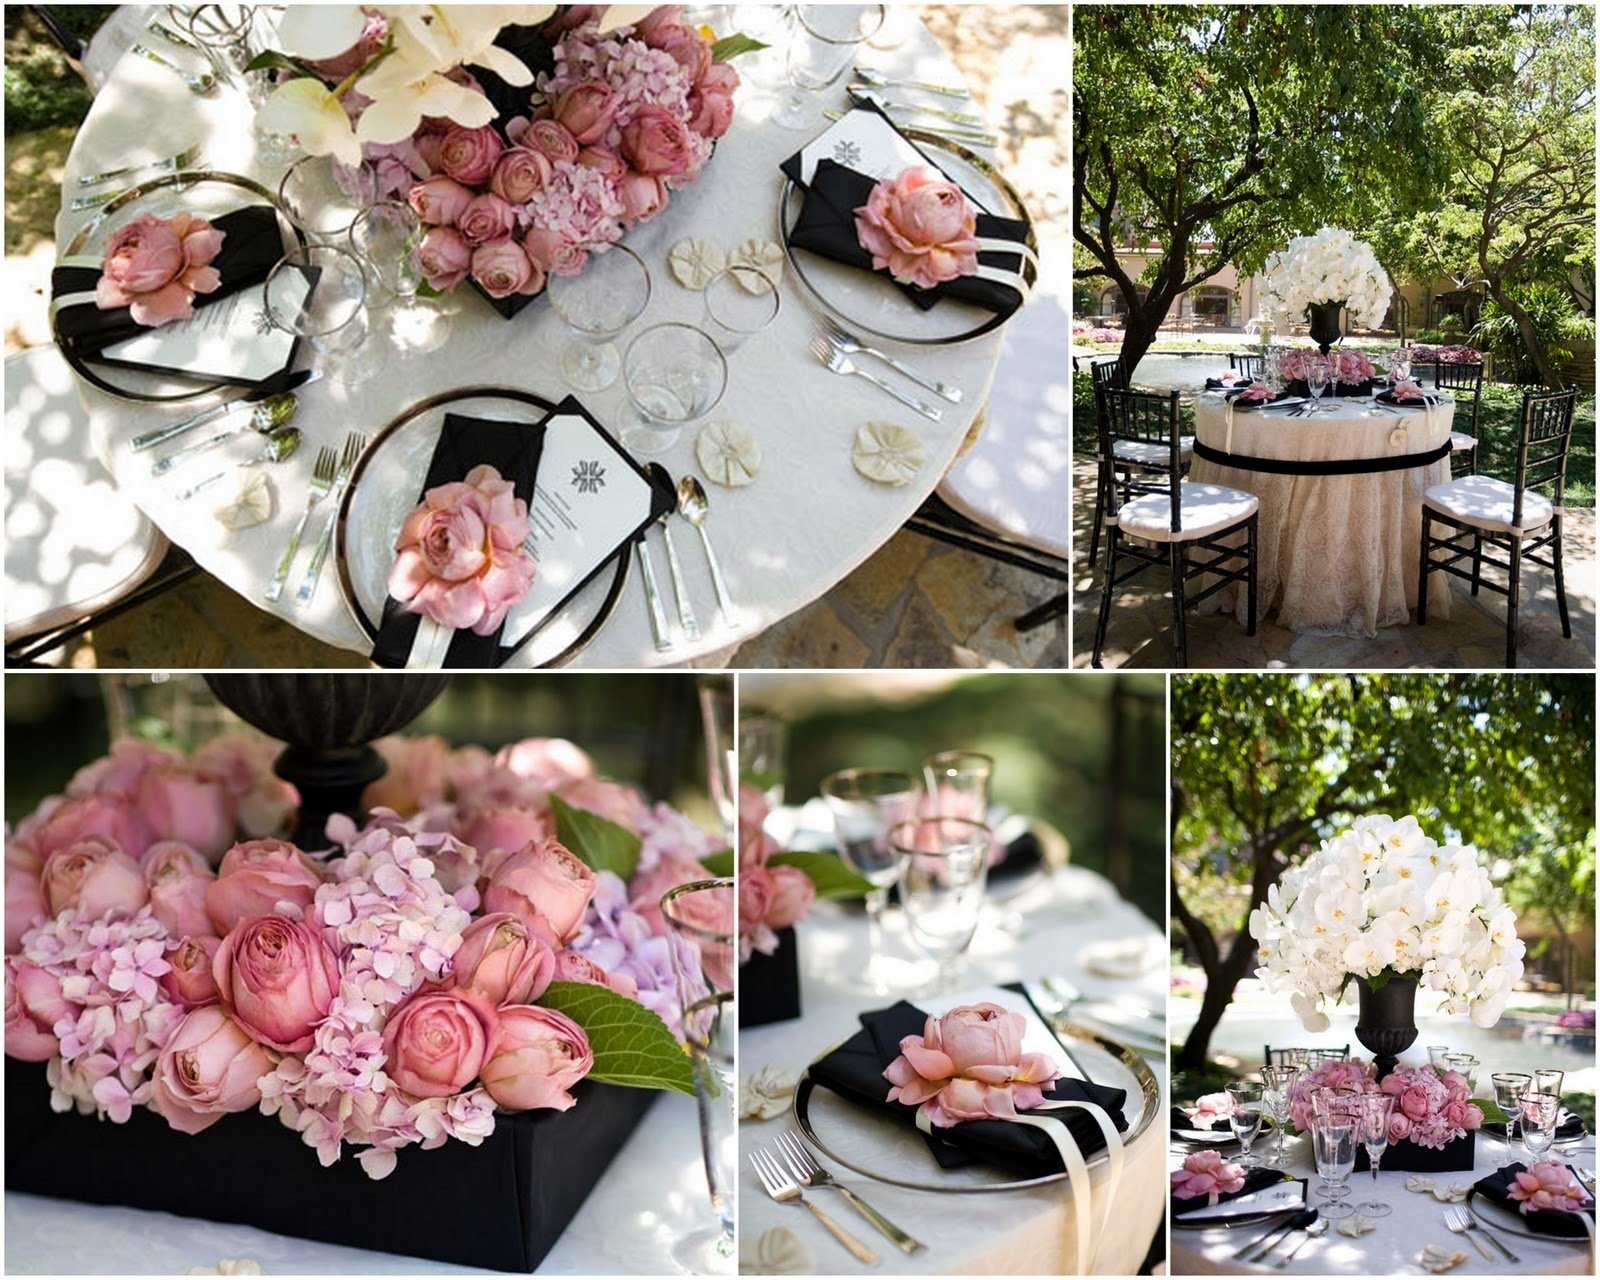 10 Nice Wedding Shower Ideas And Themes wedding shower ideas and themes margusriga baby party planning 1 2020